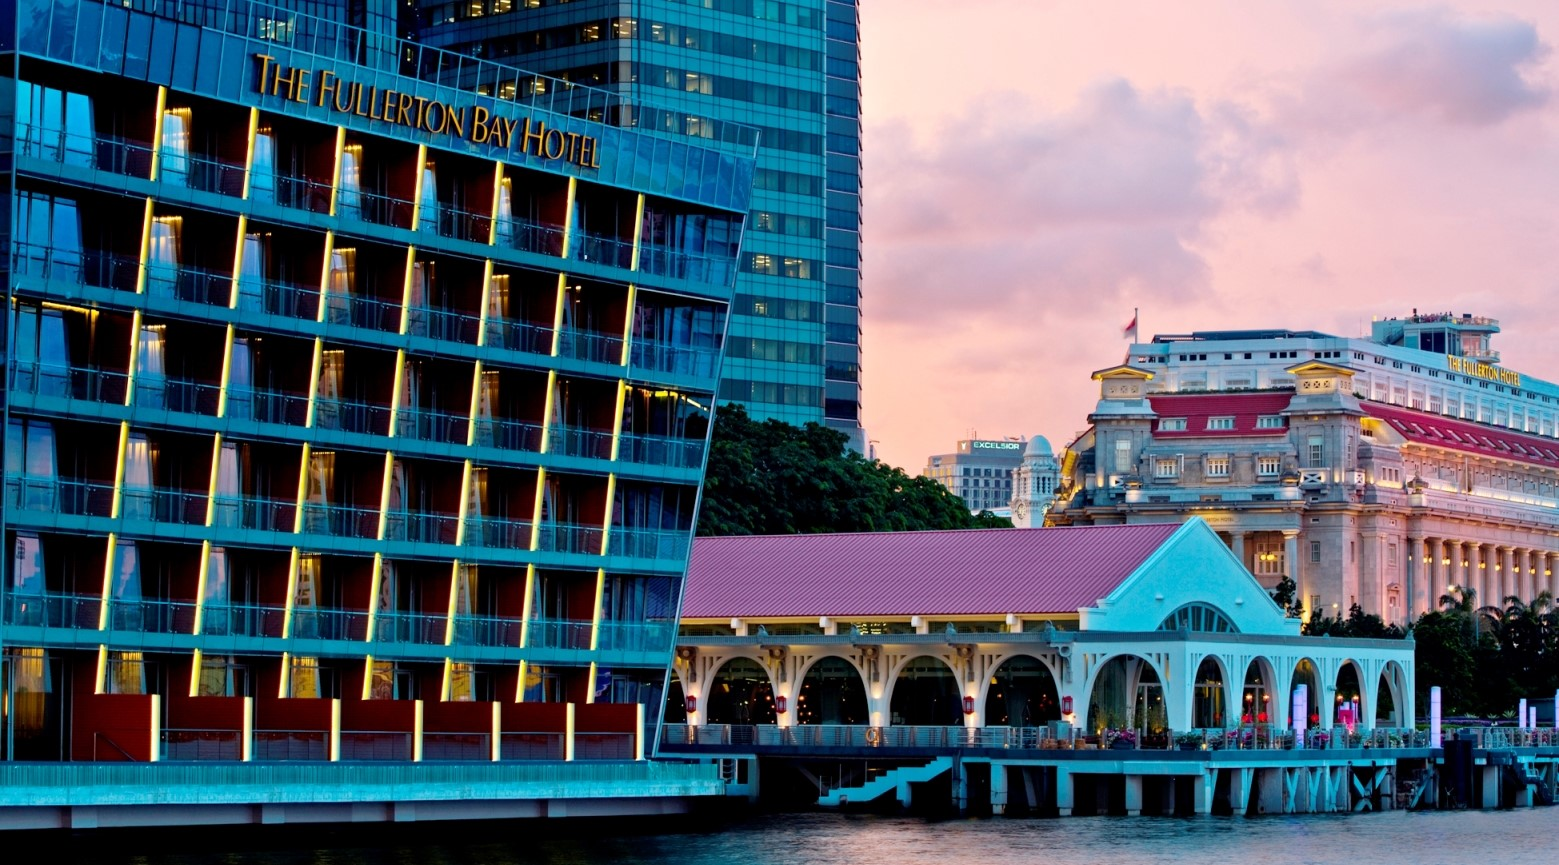 Waterfront-view-of-The-Fullerton-Bay-Hotel-Singapore - Crop